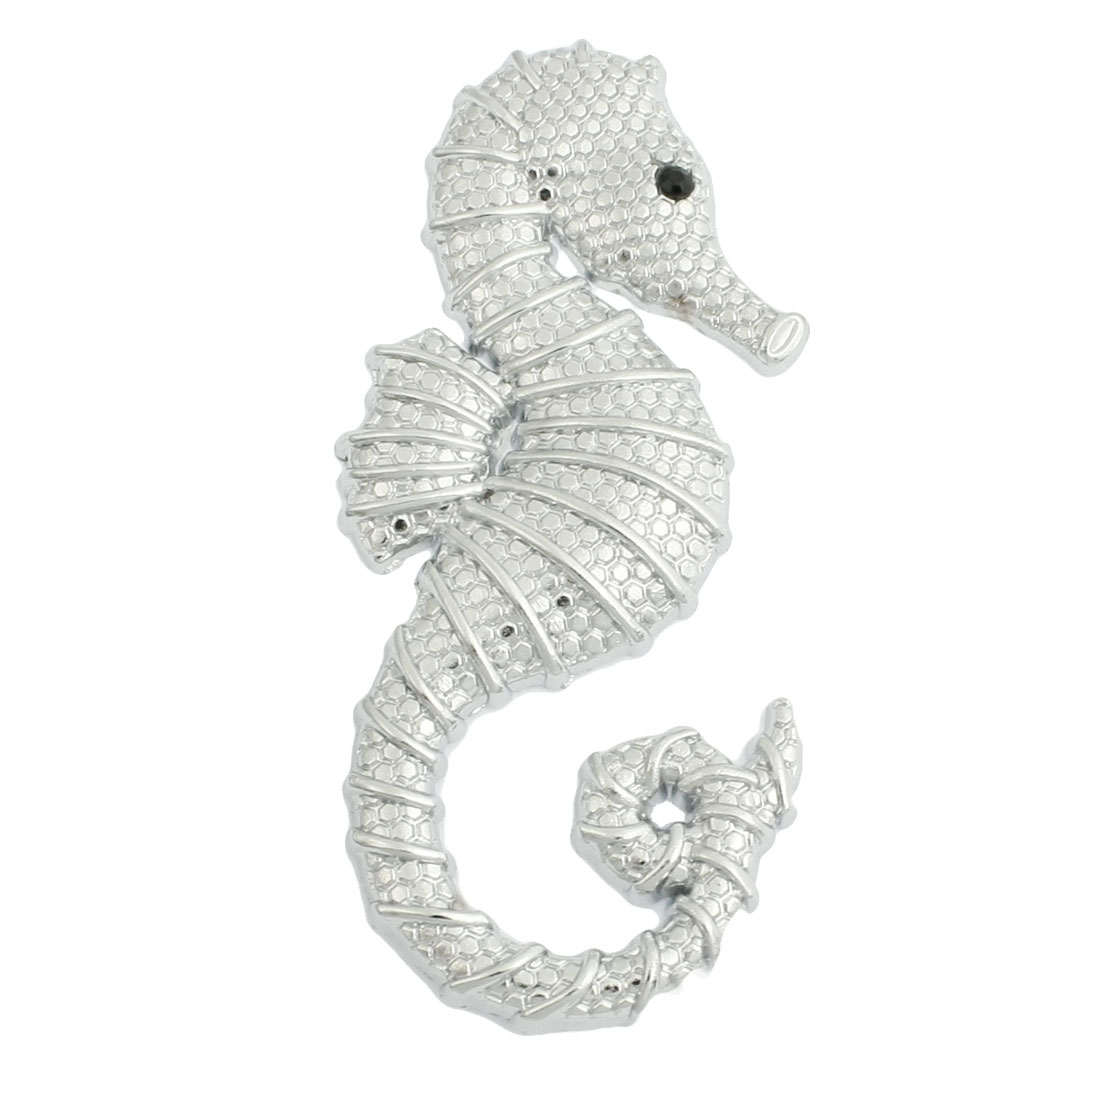 Silver Tone Metal Sea Horse Design 3D Sticker for Car Vehicle